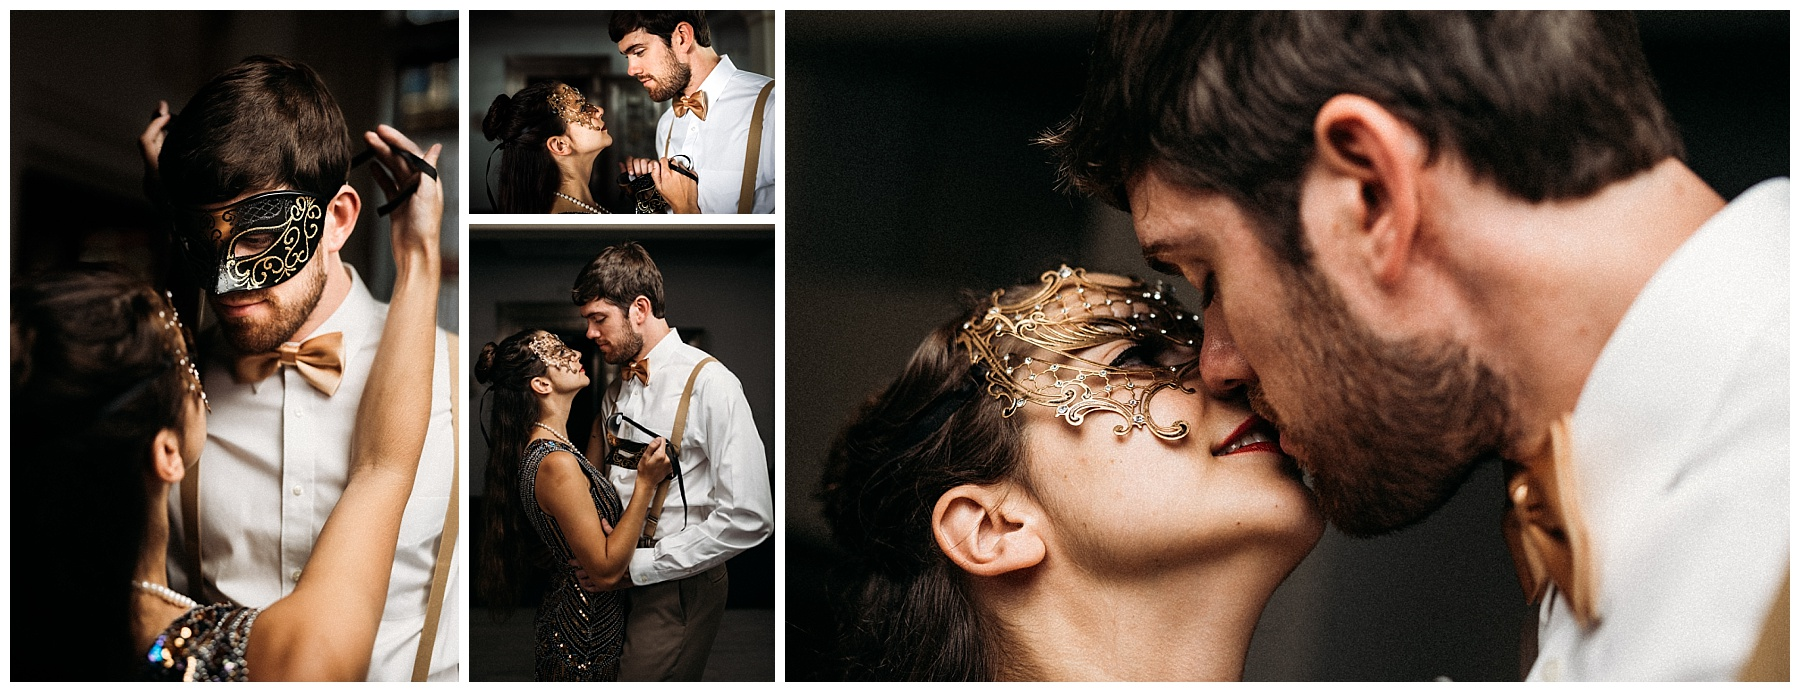 gatsby-styled-couples-shoot-final-g-web-20190707-0045_CCS-1.jpg